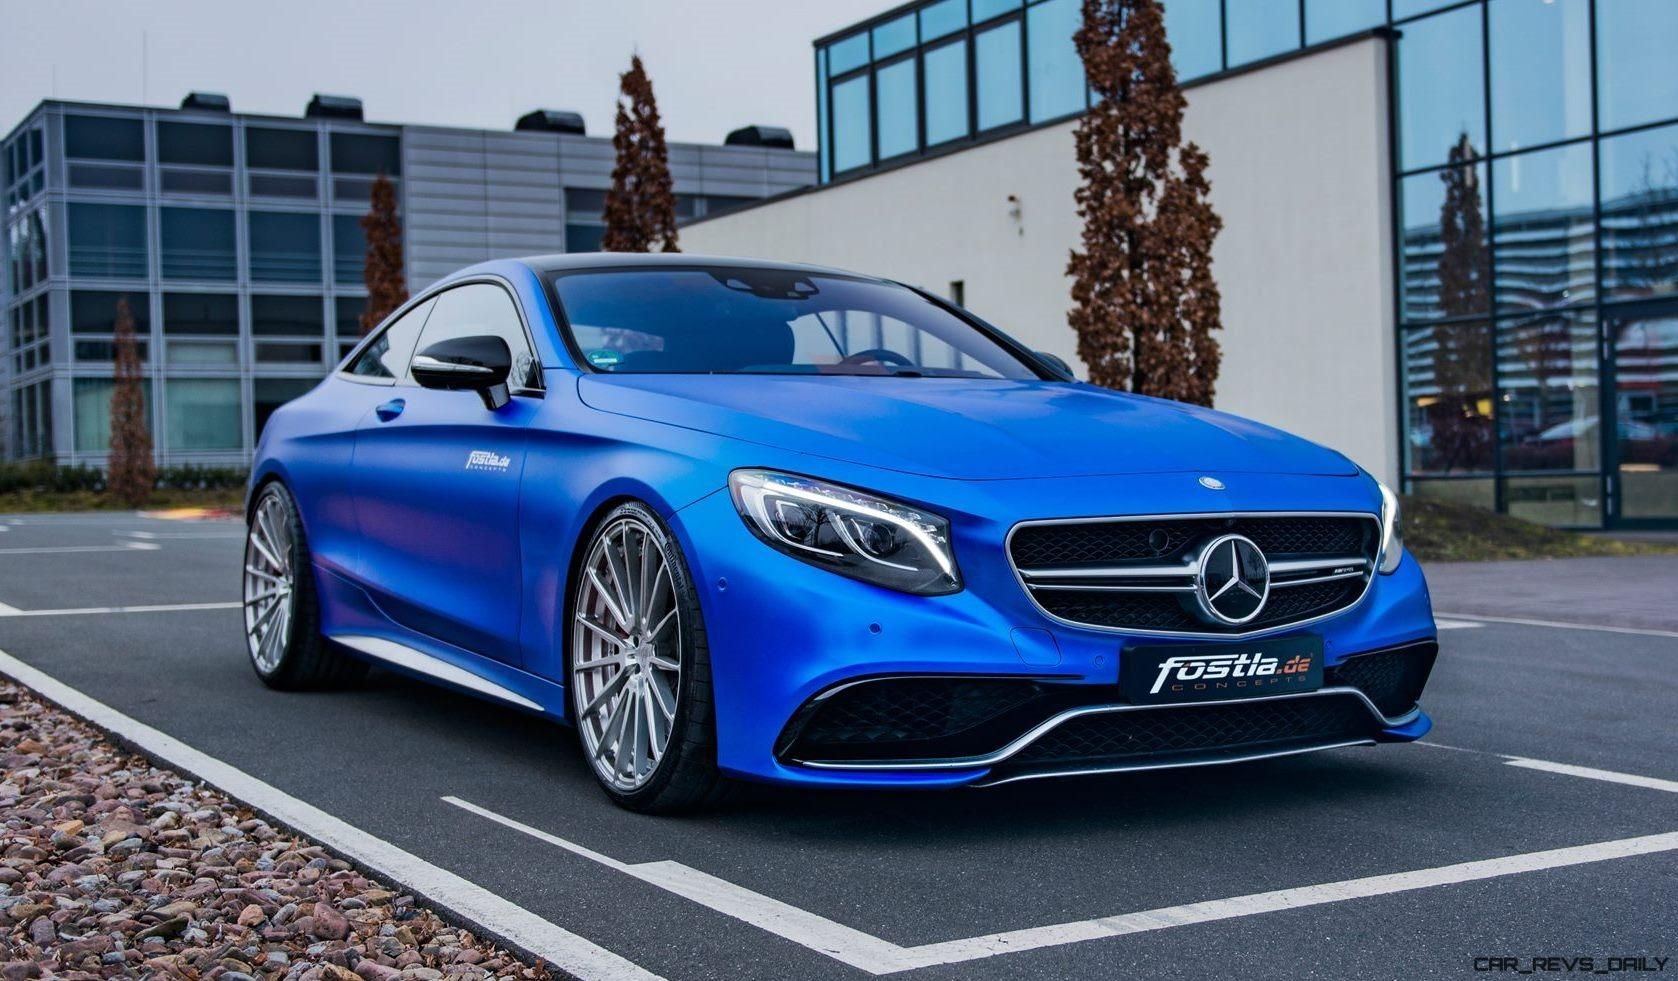 2017 Mercedes Amg S63 Coupe By Fostla De Is Dripping Blue Chrome